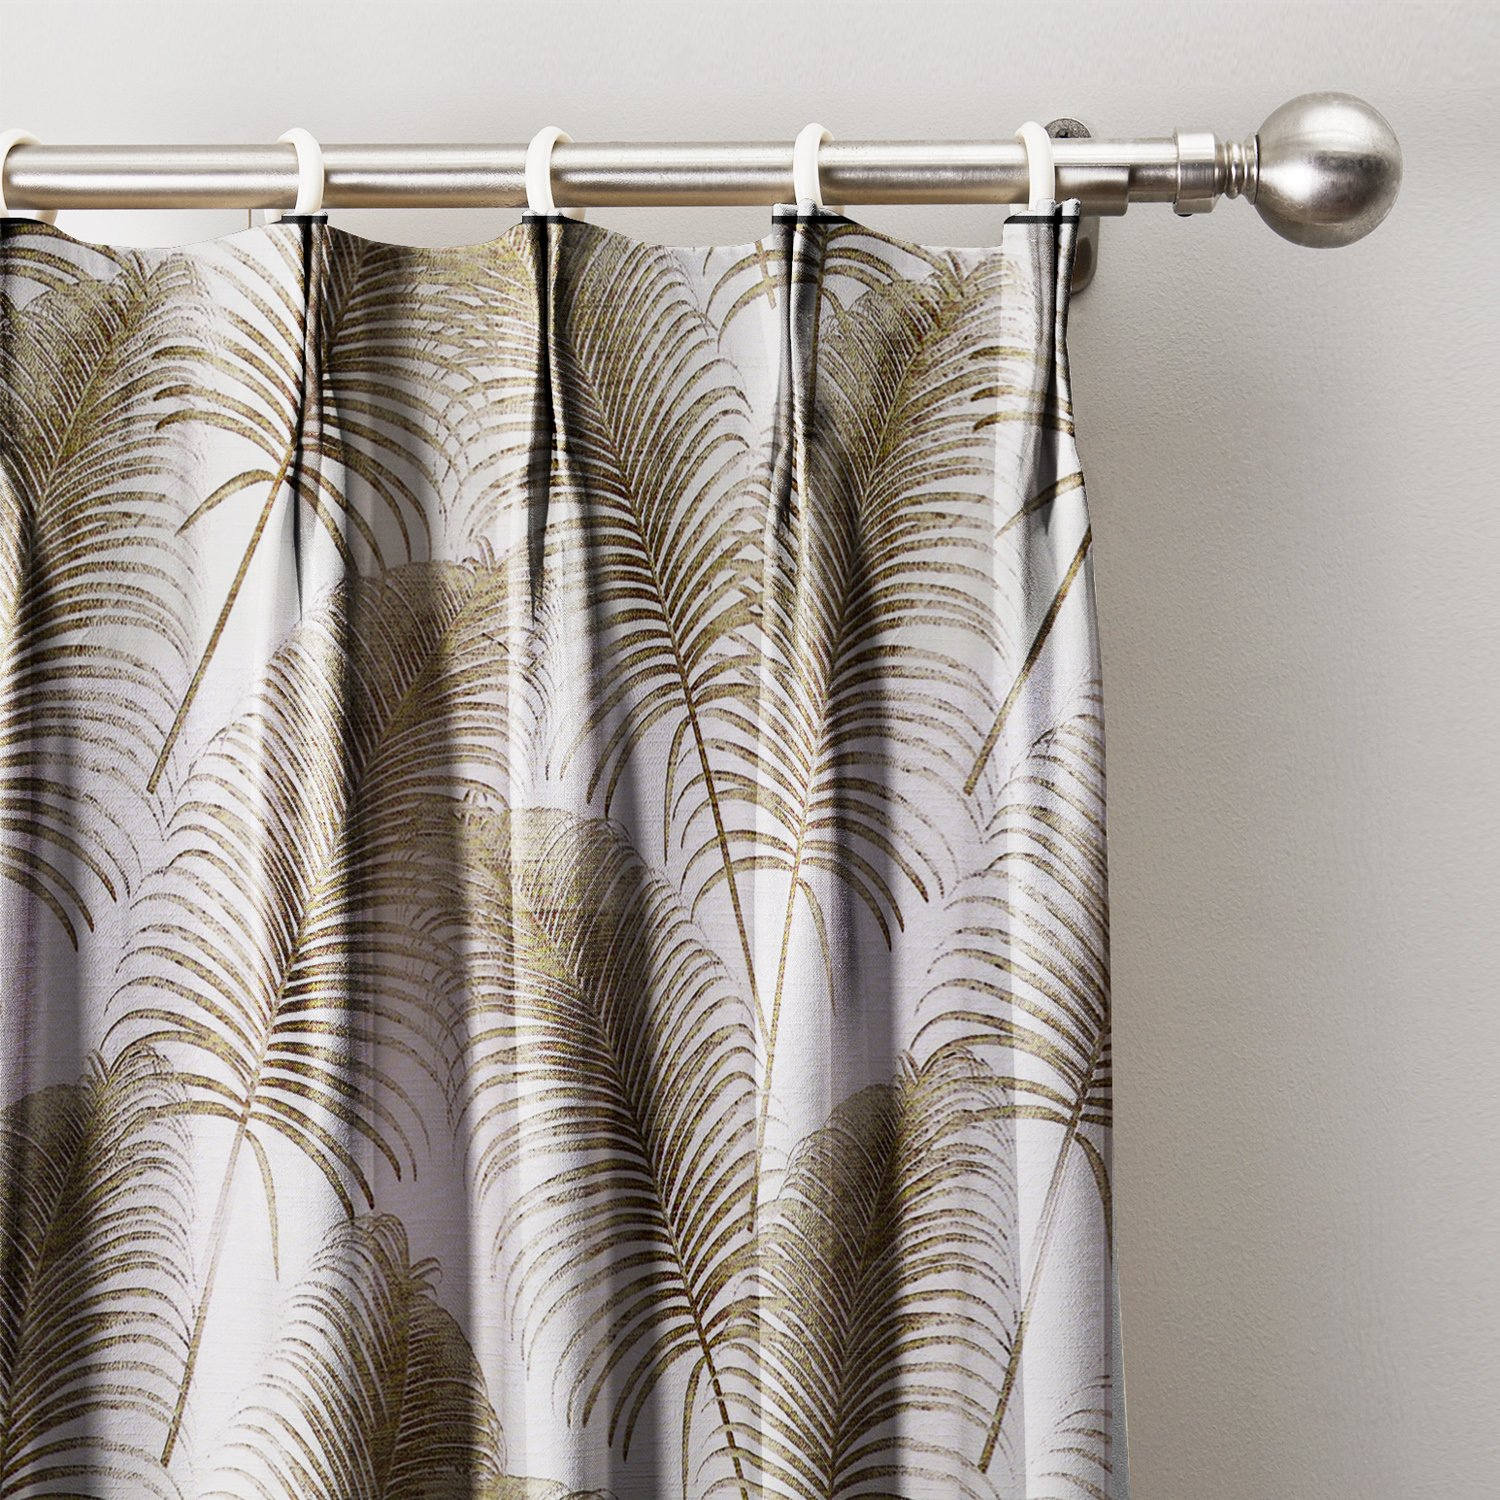 Fawn Leaves Print Curtain 120''W x 96''L, Pinch Pleat Blackout Lining Darpes Panel For Bedroom Living Room Hotel Restaurant (1 Panel)